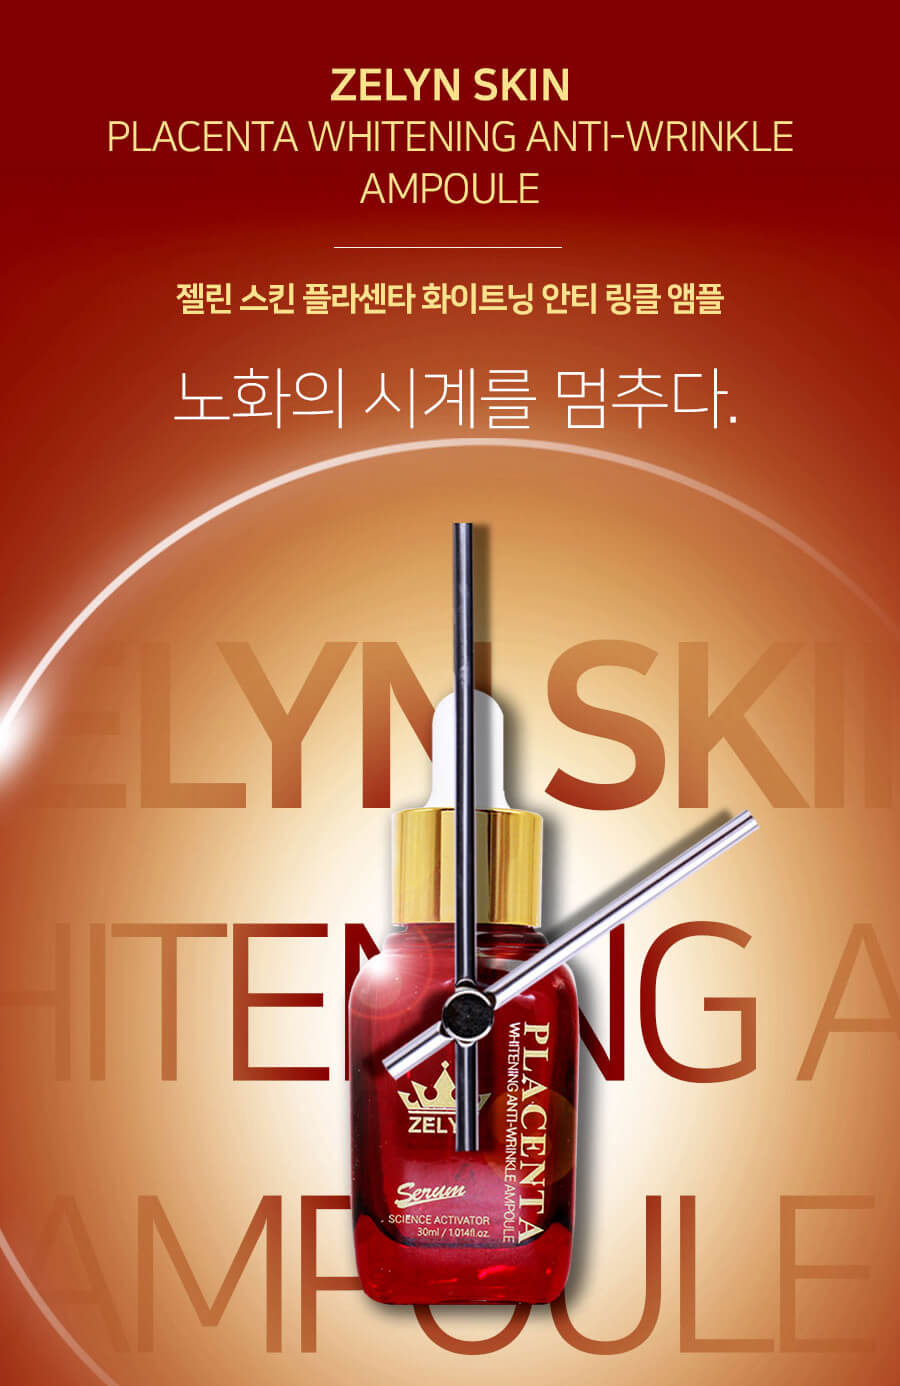 Zelyn Placenta Whitening Anti-Wrinkle Ampoule-bicicosmetics.vn